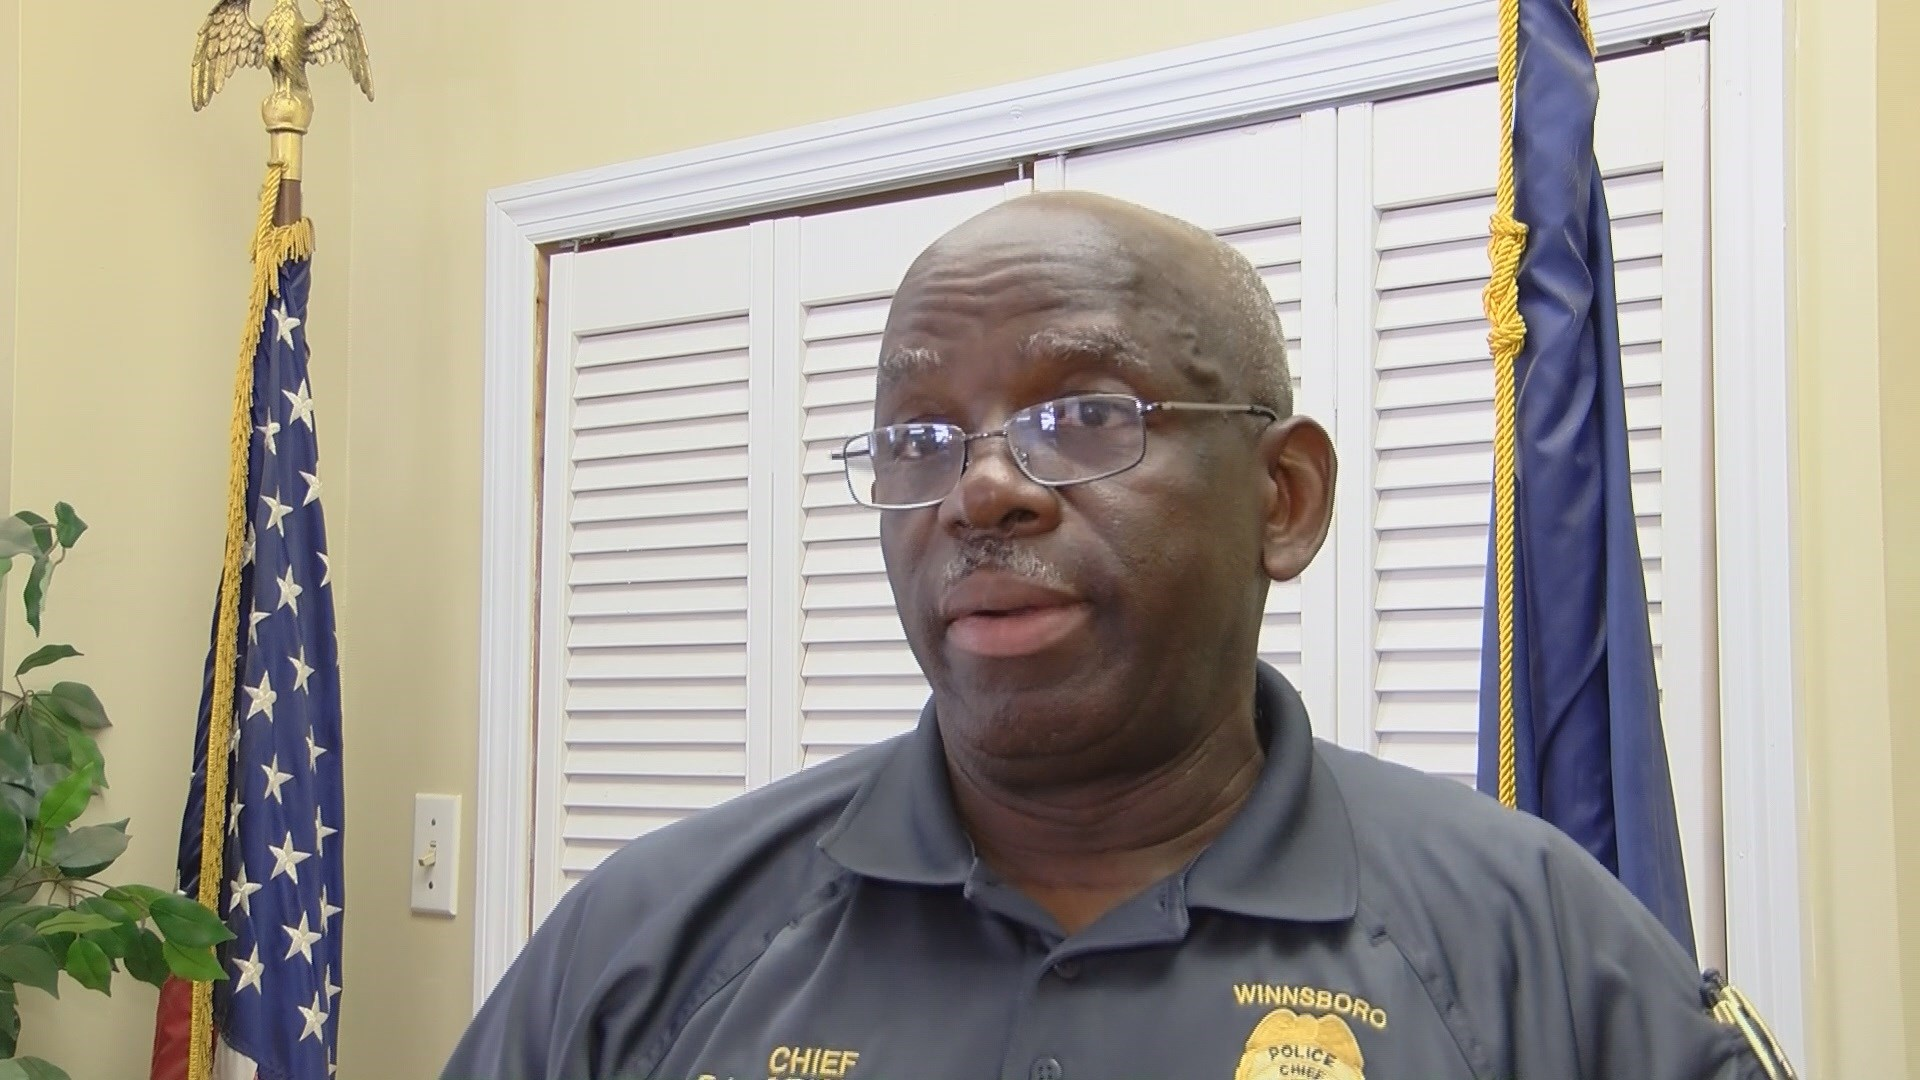 Police Chief Arrested In Prostitution Sting